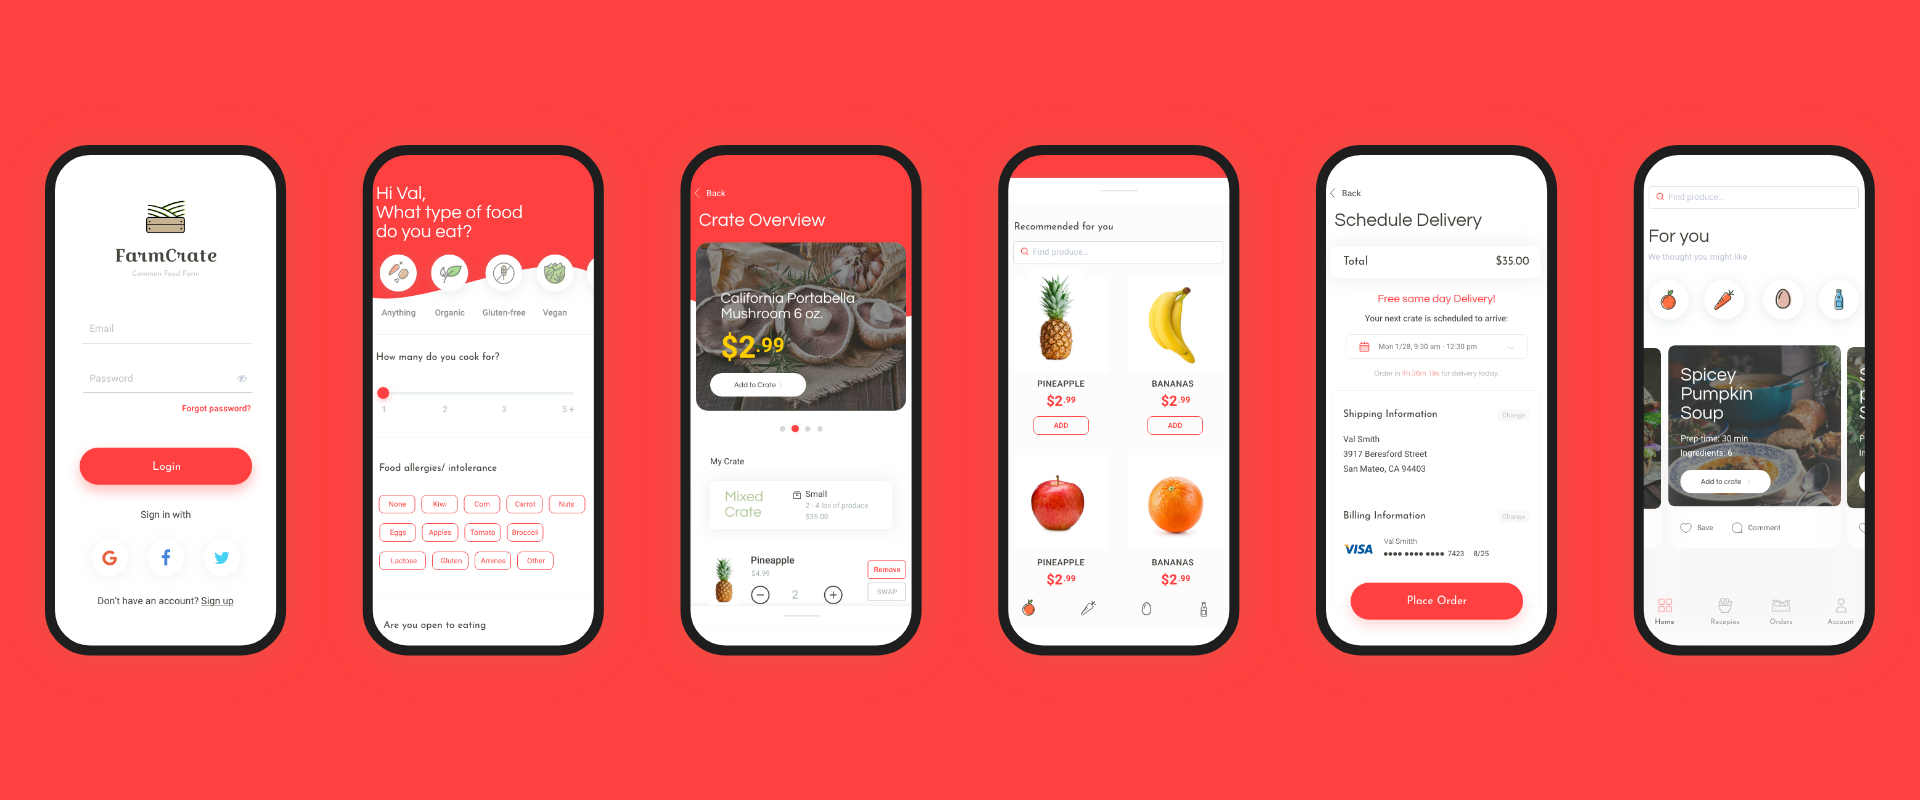 Menu For Olive Garden: Designing A CSA Food App In 3 Days